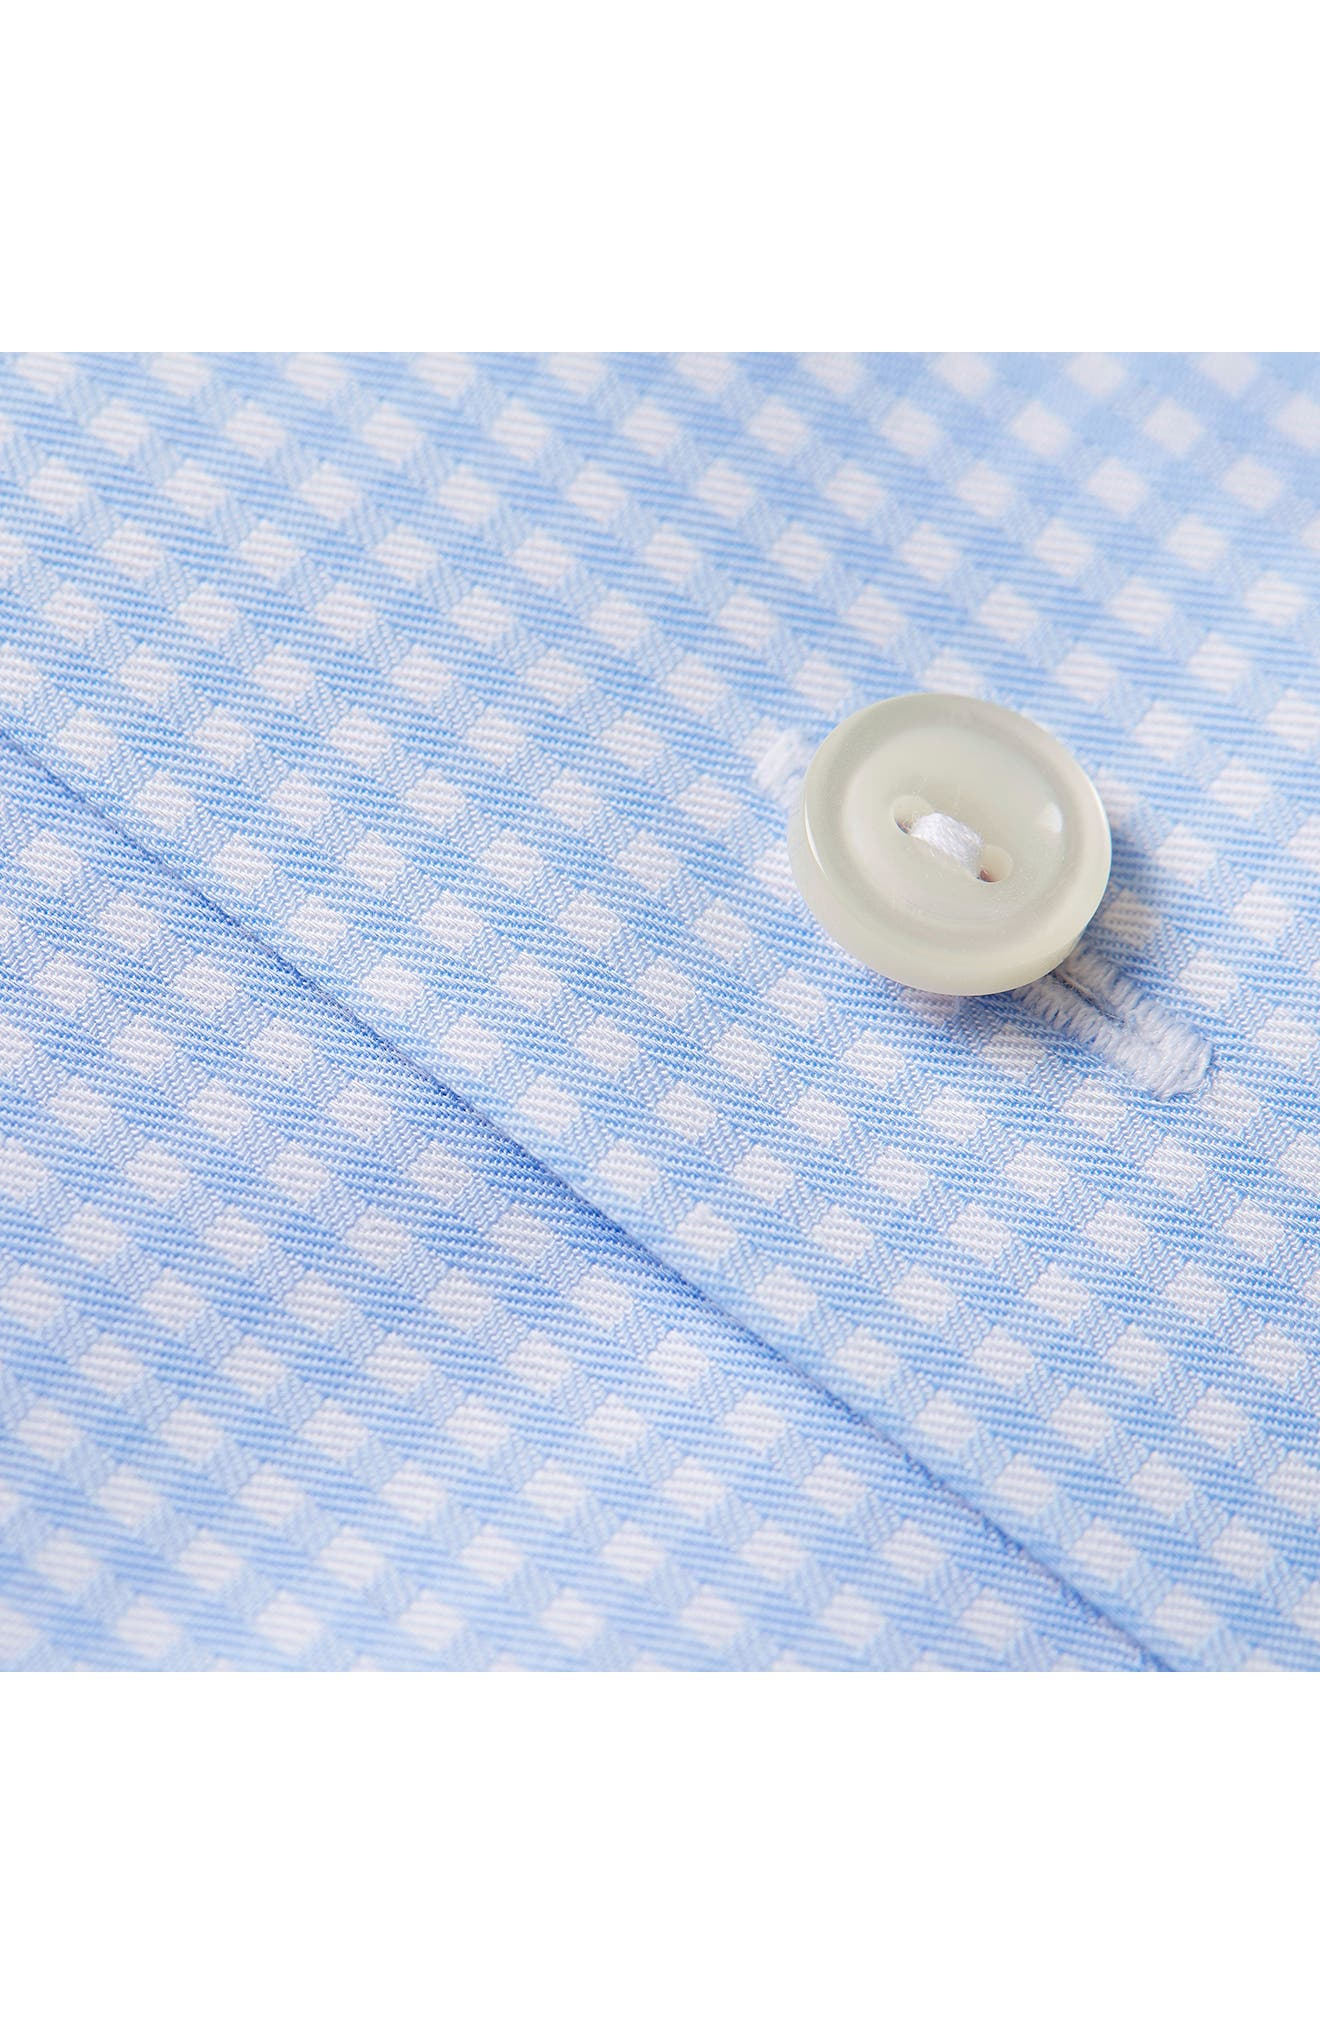 Contemporary Fit Check Dress Shirt,                             Alternate thumbnail 3, color,                             Blue